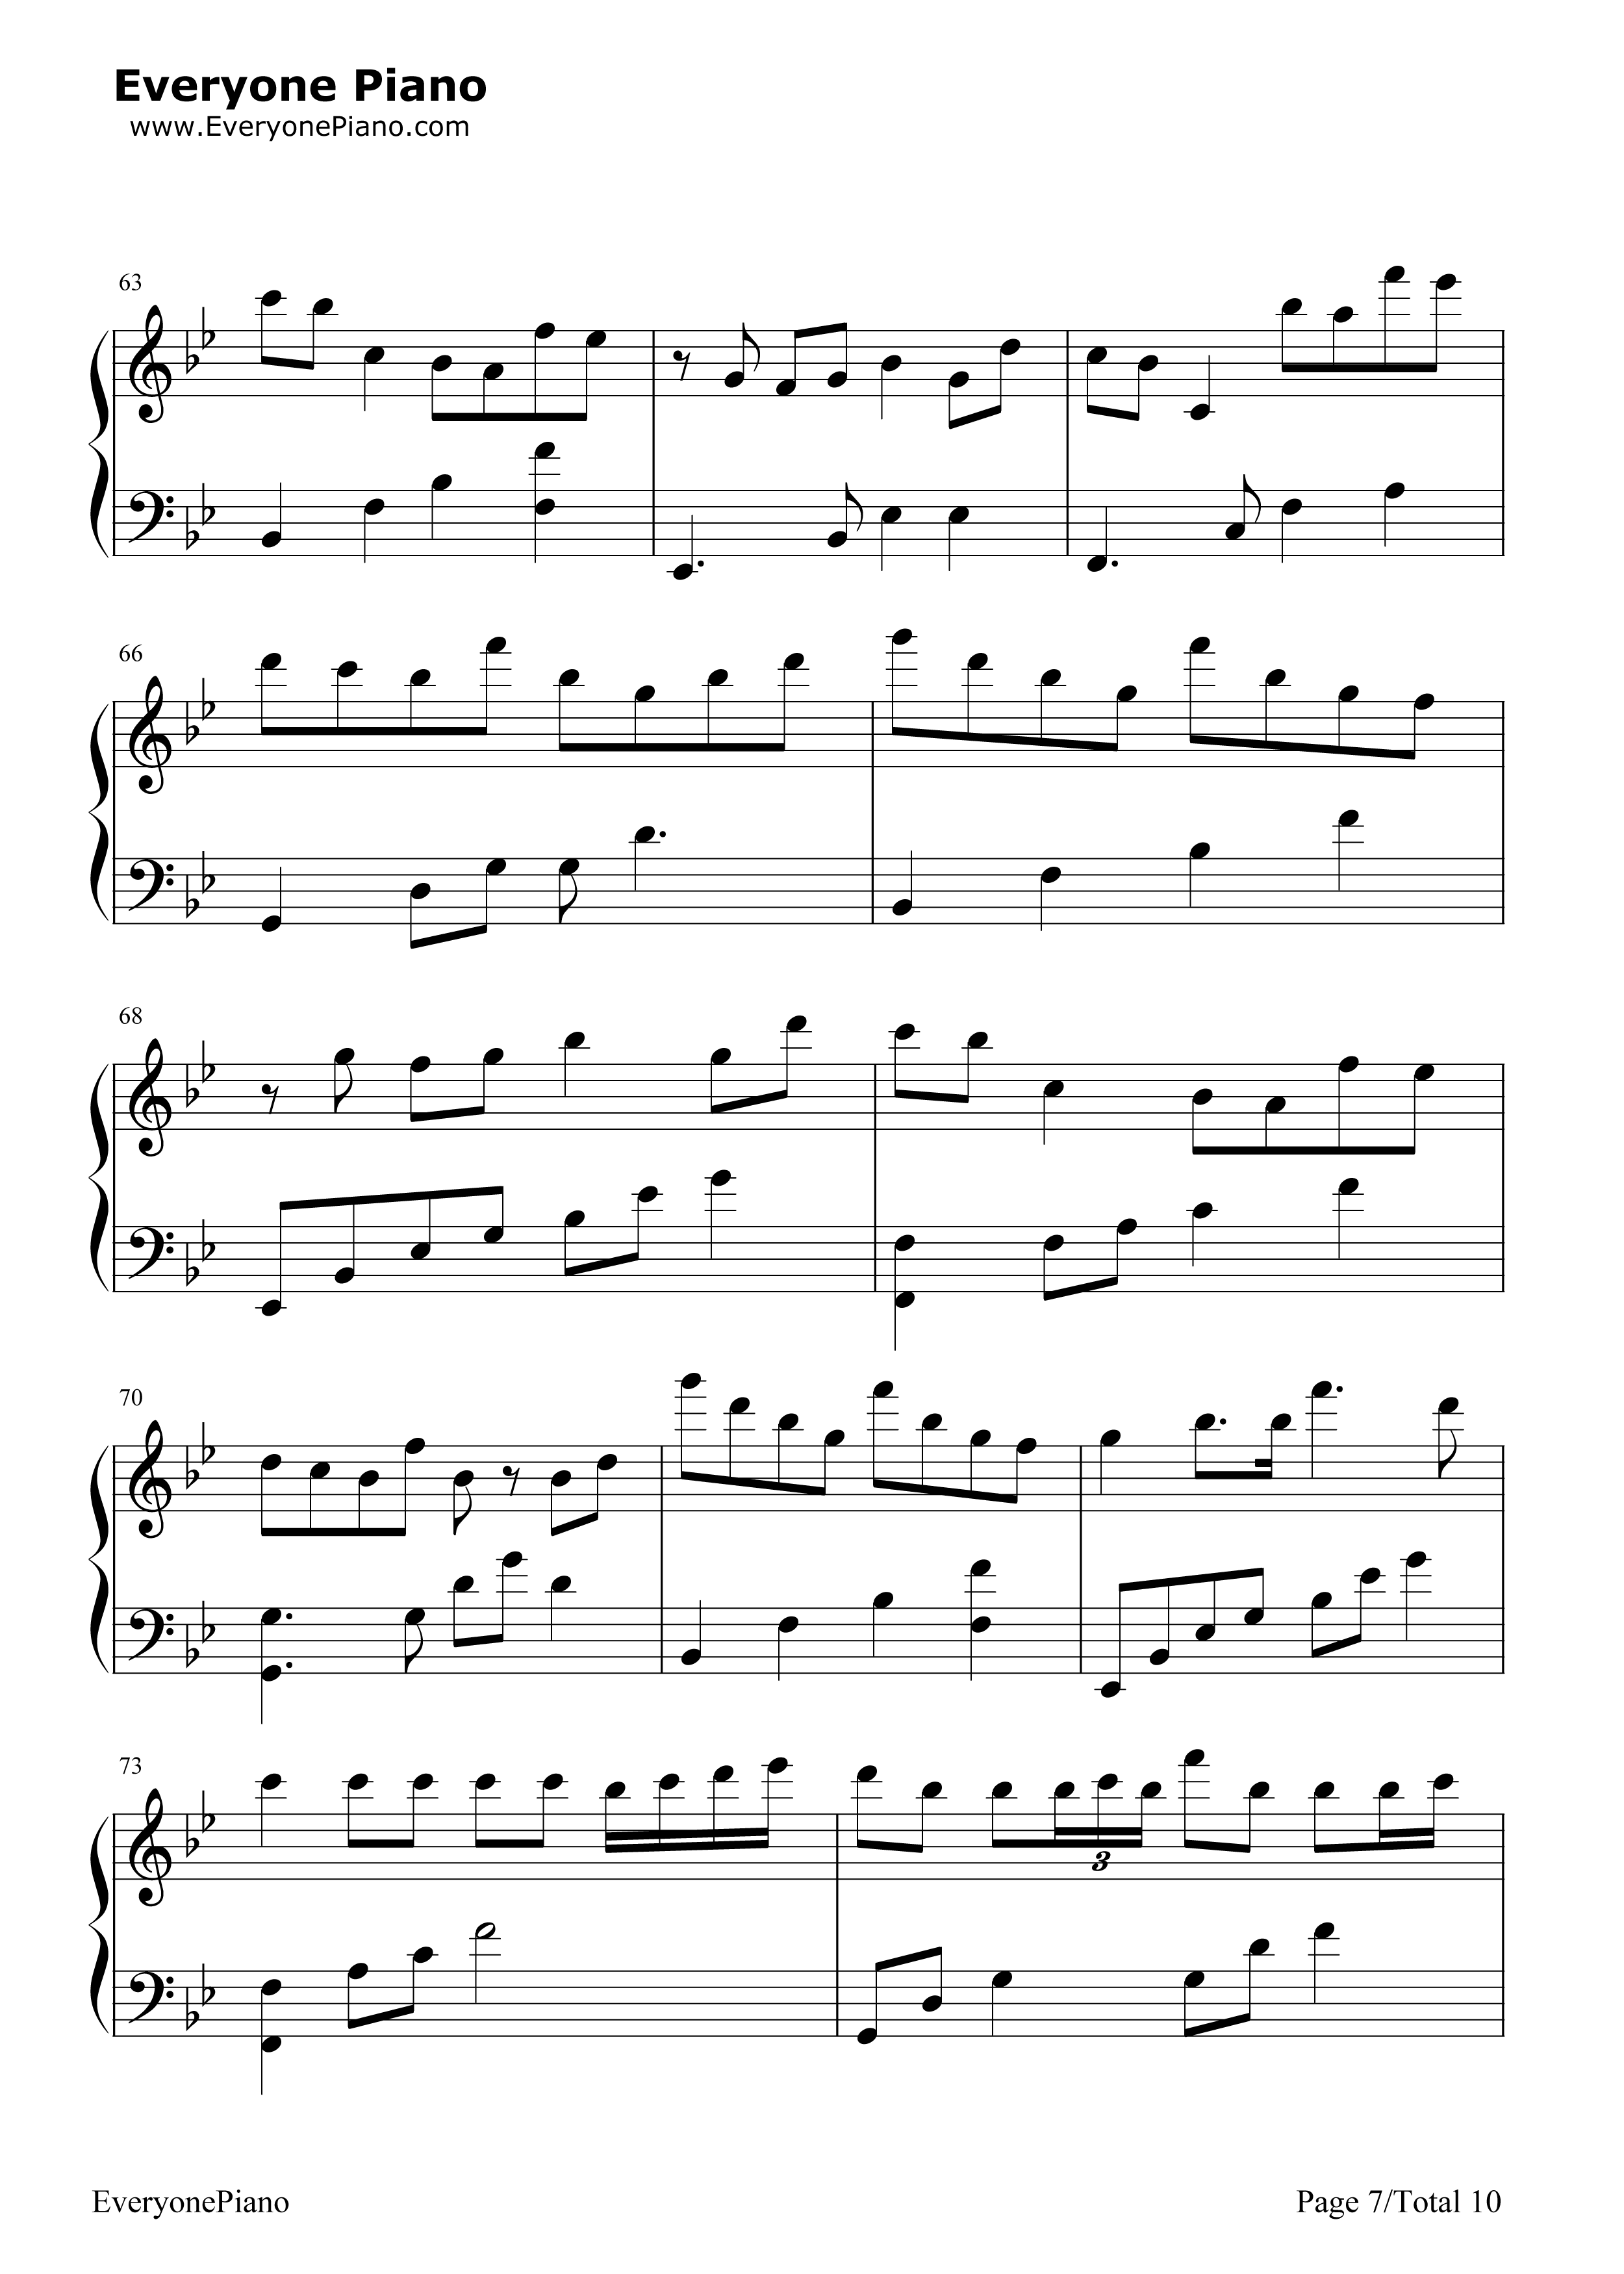 Scary Monsters and Nice Sprites-Skrillex Stave Preview 7-Free Piano Sheet Music u0026 Piano Chords